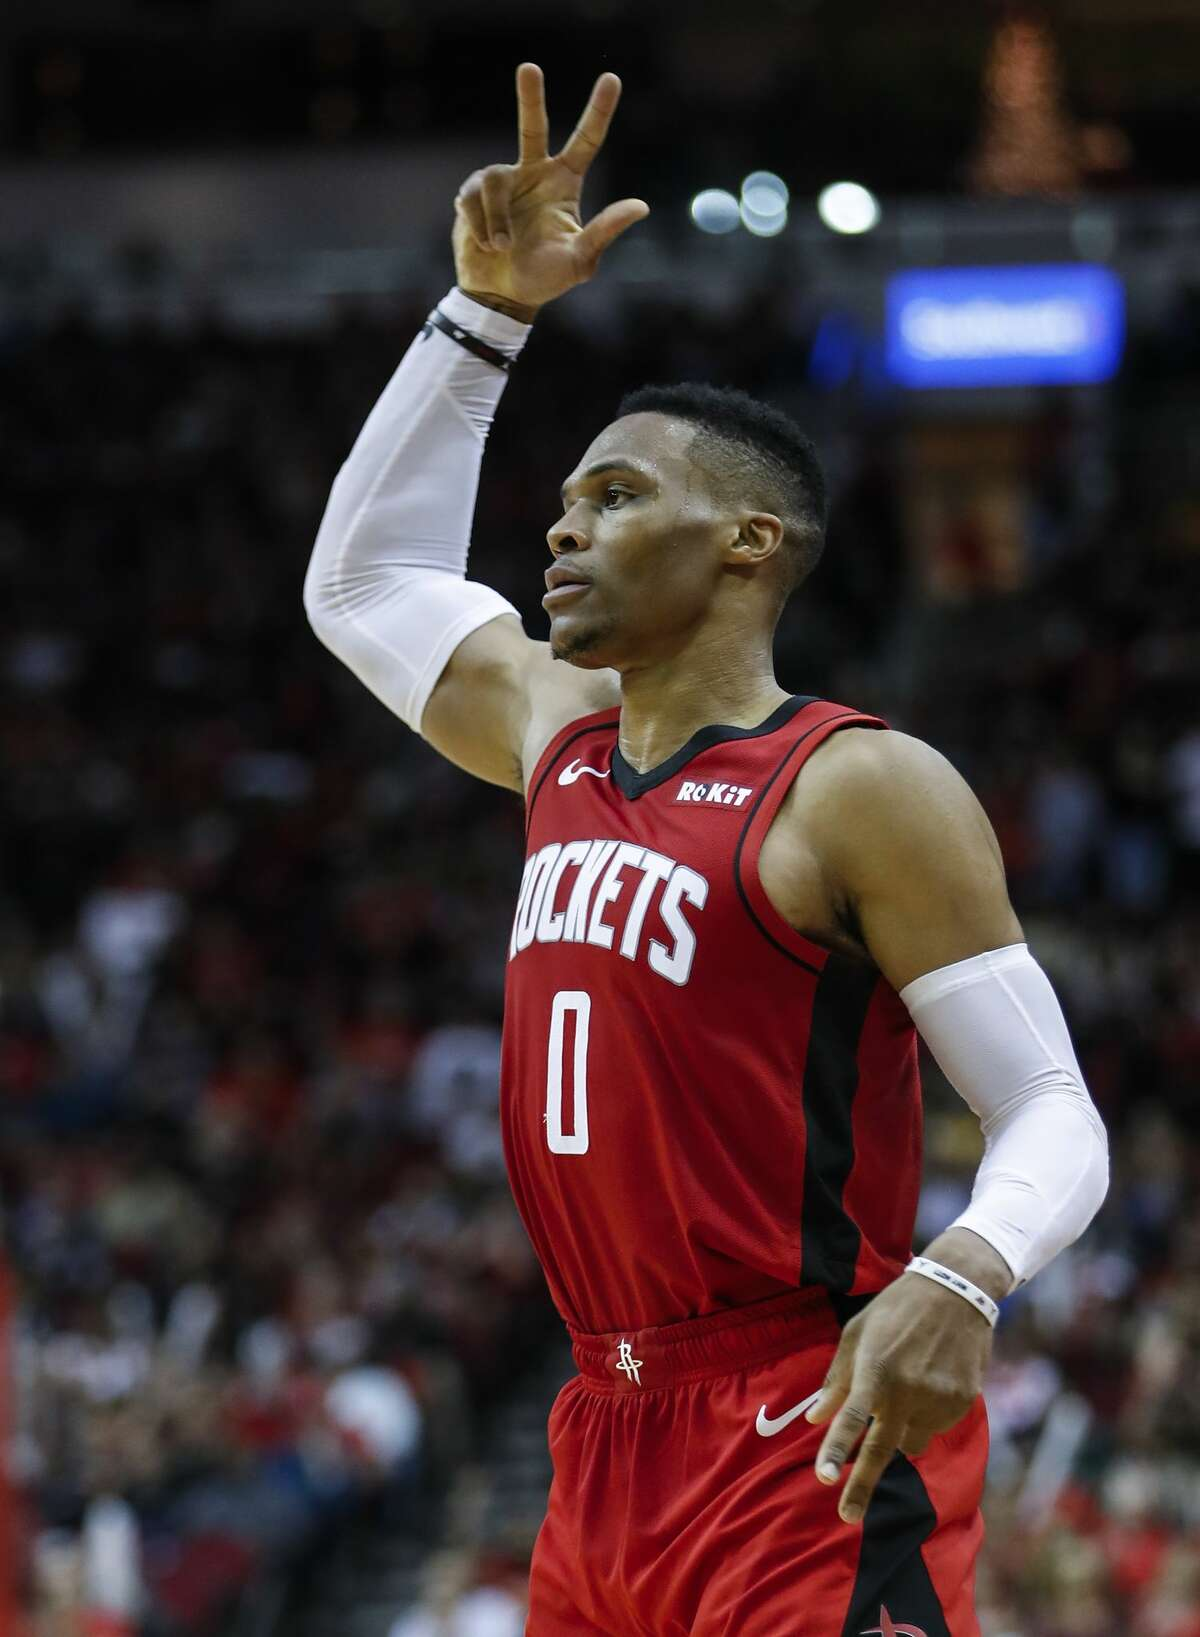 Houston Rockets guard Russell Westbrook (0) reacts after hitting a 3-pointer over Sacramento Kings forward Richaun Holmes (22) during the first half of an NBA basketball game at Toyota Center on Monday, Dec. 9, 2019, in Houston.